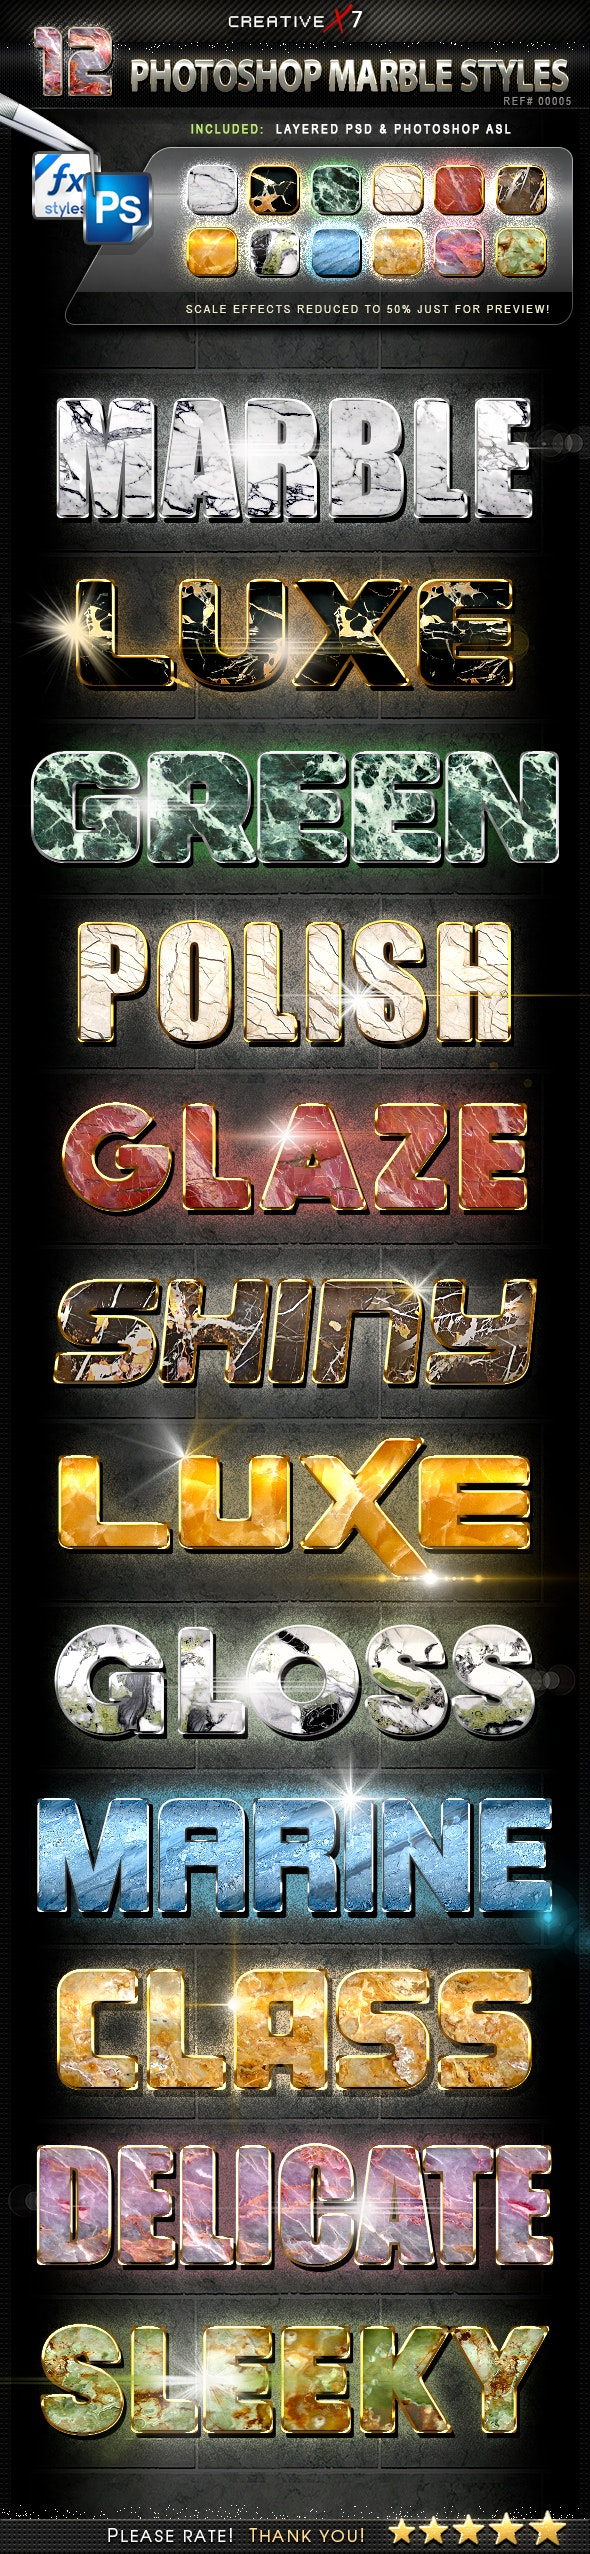 CreativeX7 - 12 Photoshop Marble Styles - Text Effects Styles